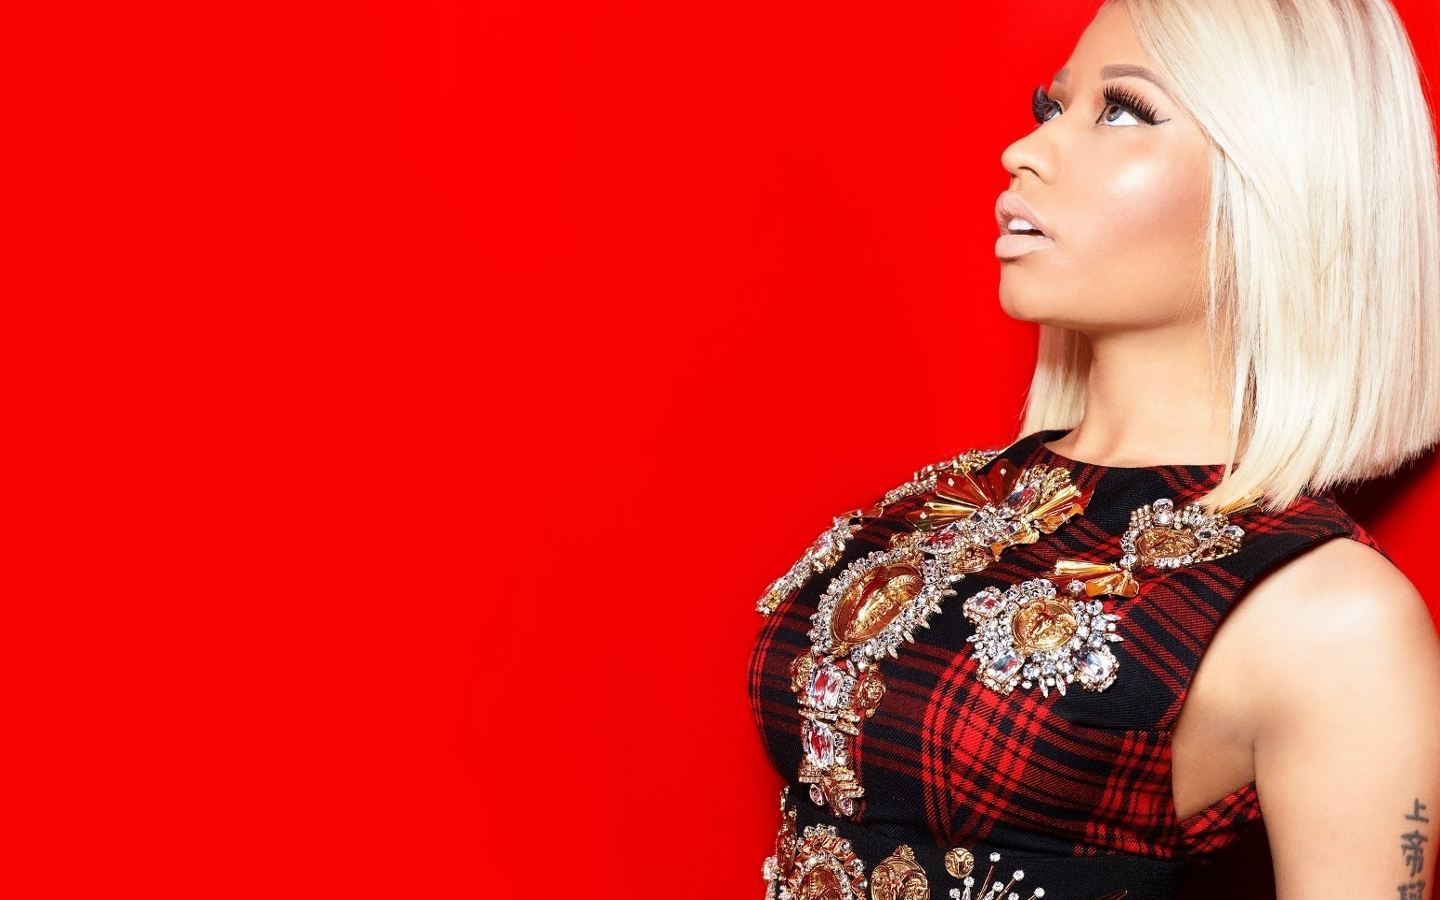 Nicki minaj 25354 1440x900 px nicki minaj 25354 voltagebd Image collections